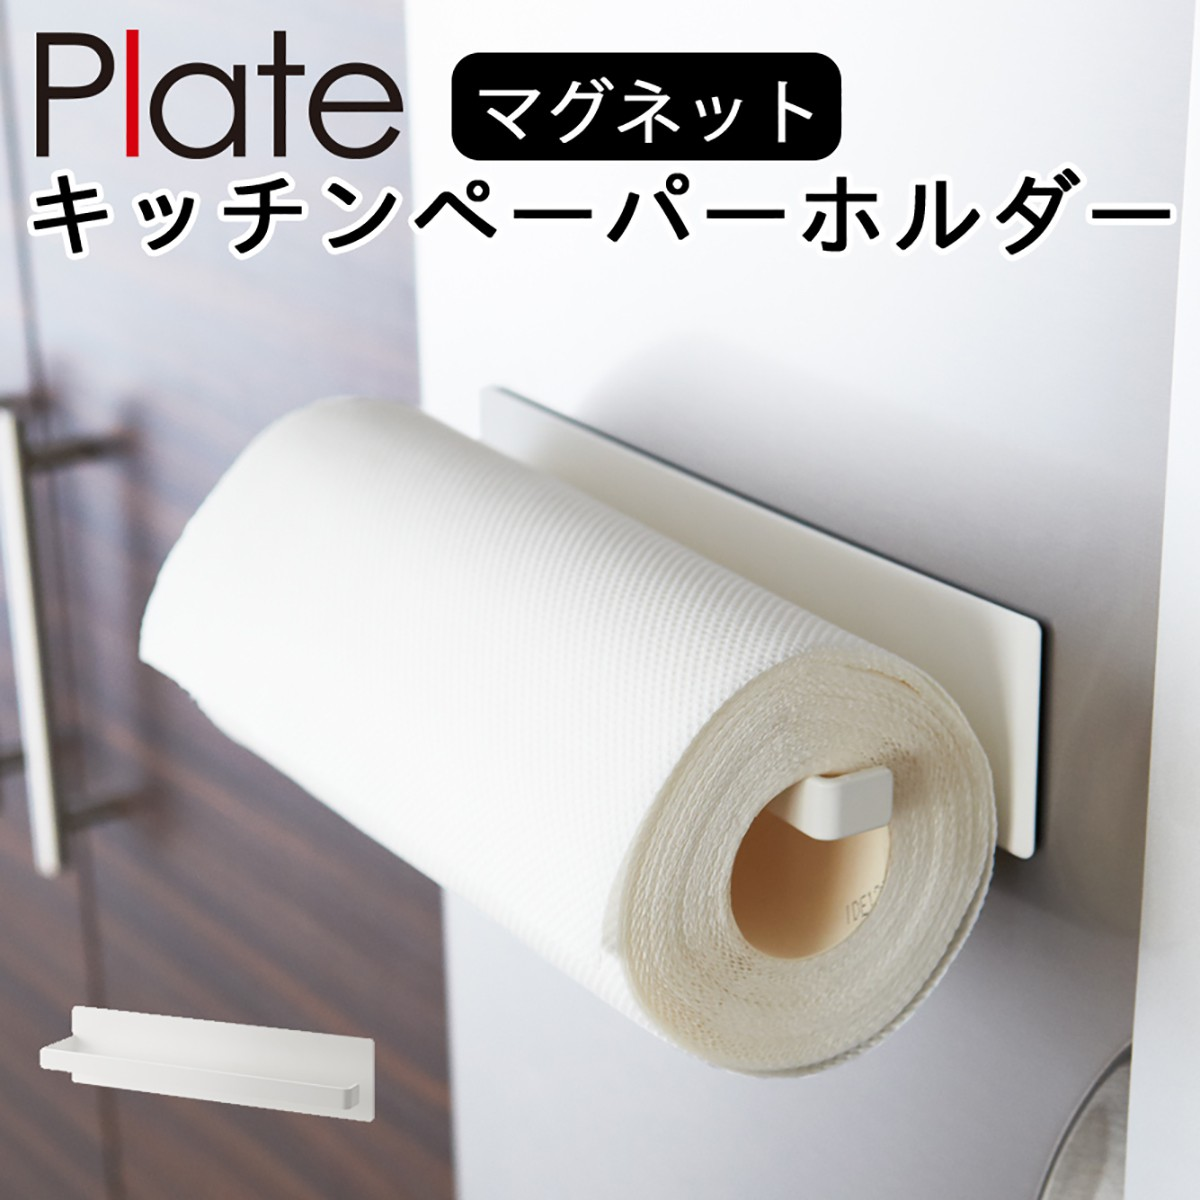 Magnet Kitchen Roll Holder Plate White 02439 Gift Giveaway Paper Towel  Stand Magnetic Storage Fashionable Kitchen